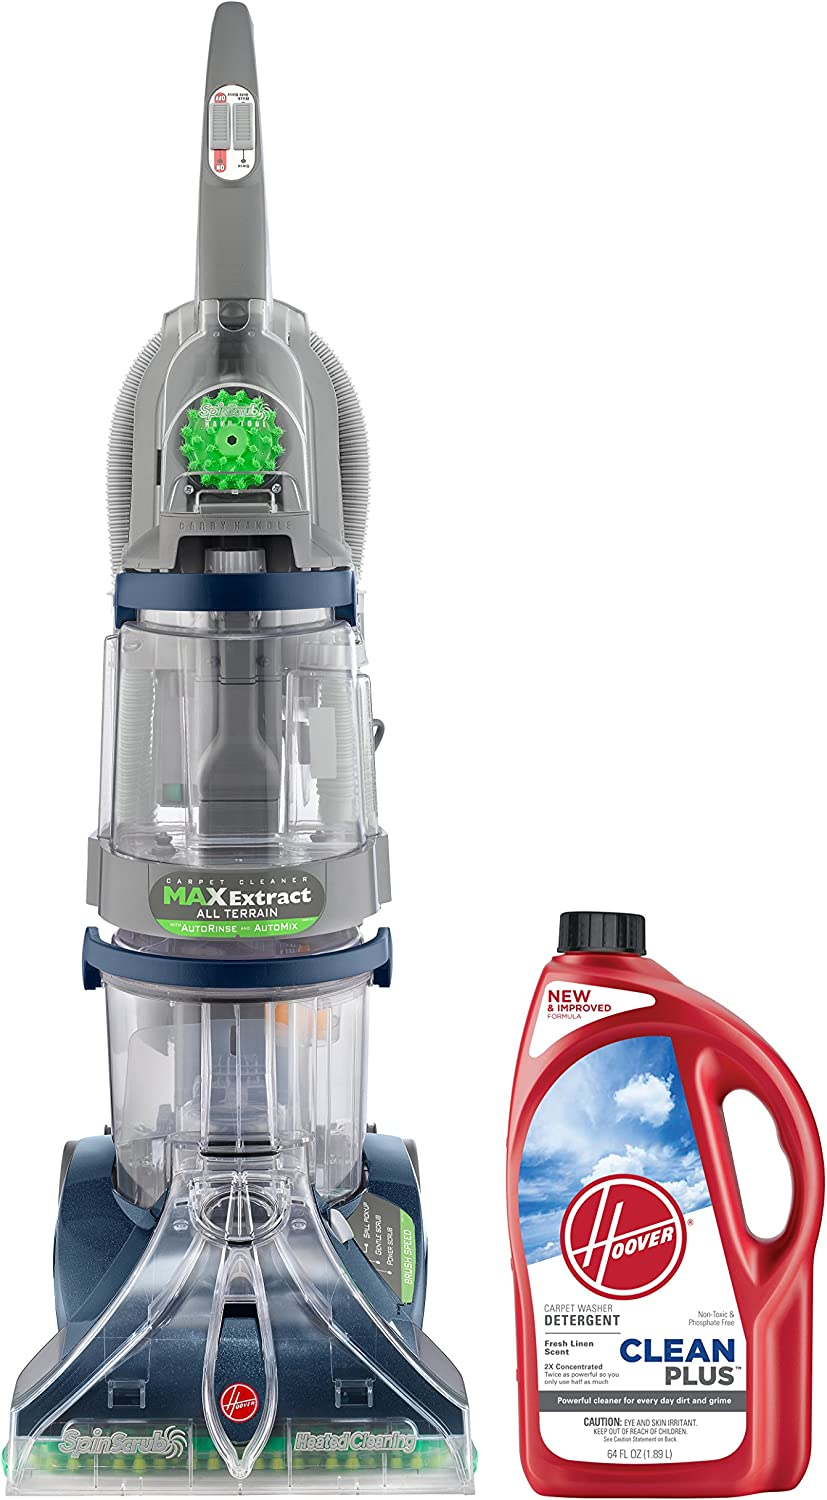 Hoover Carpet Cleaner Max Extract Dual V All Terrain Hardwood Floor and Carpet Cleaner Machine